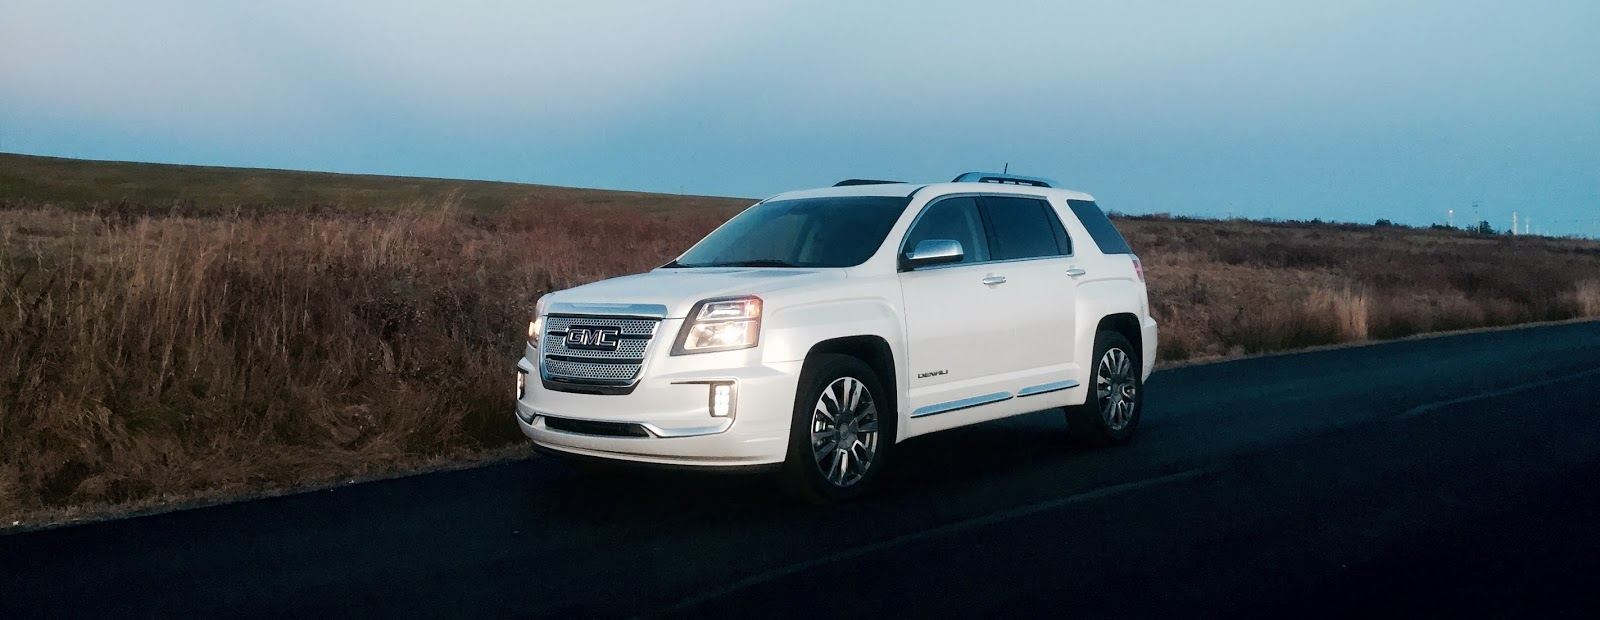 view drive mechanically gmc news left first terrain denali automobile side front the magazine